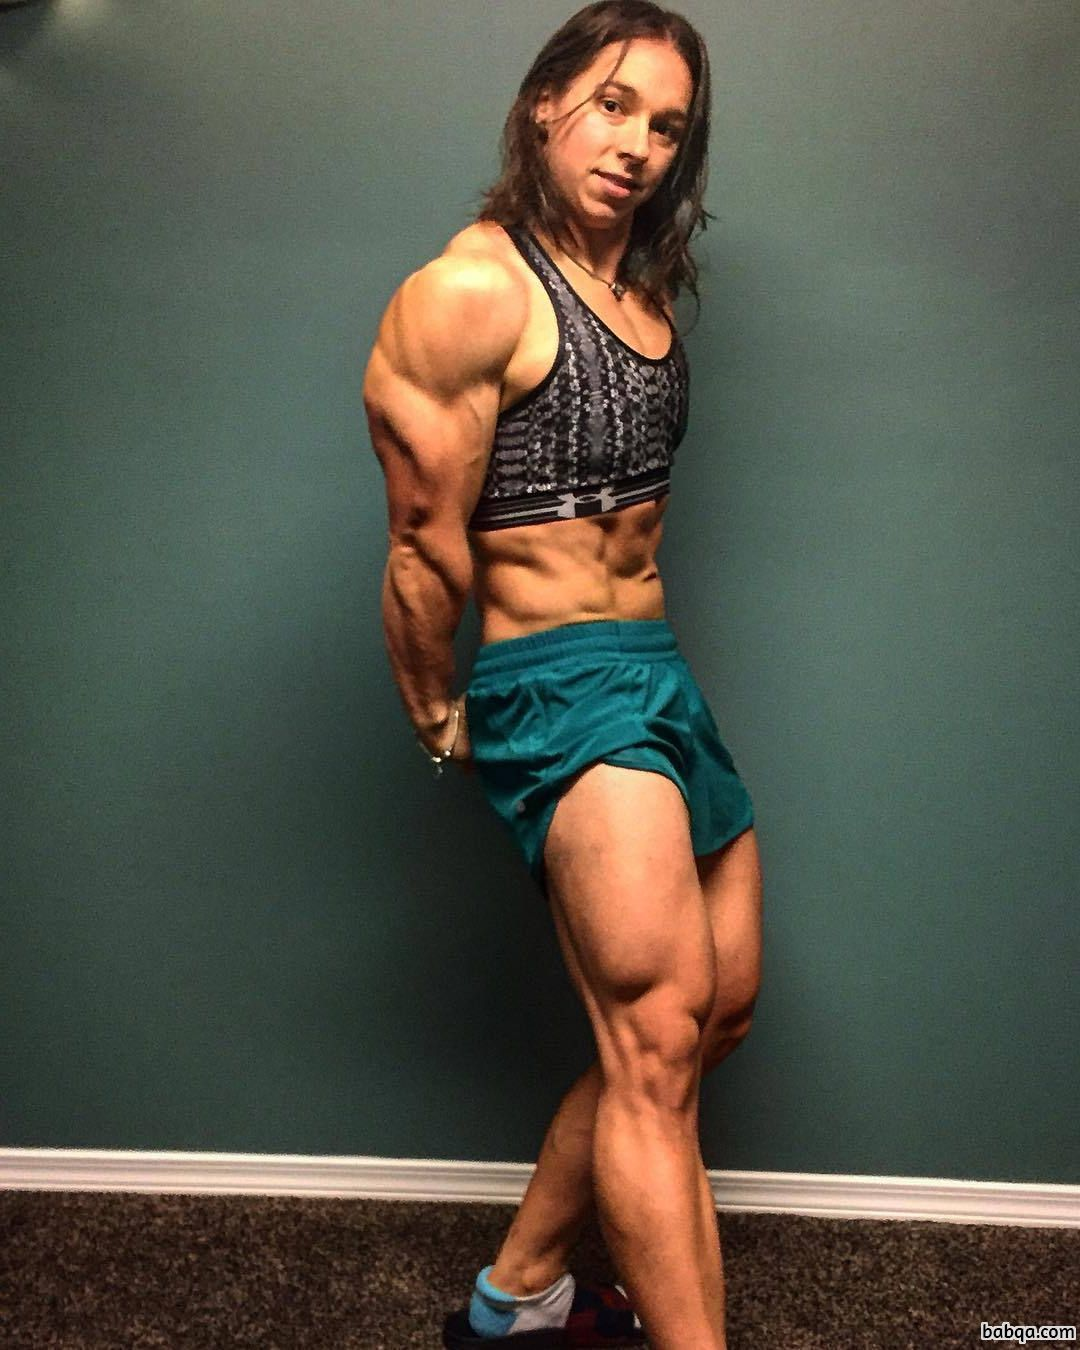 hot girl with muscle body and muscle legs repost from facebook